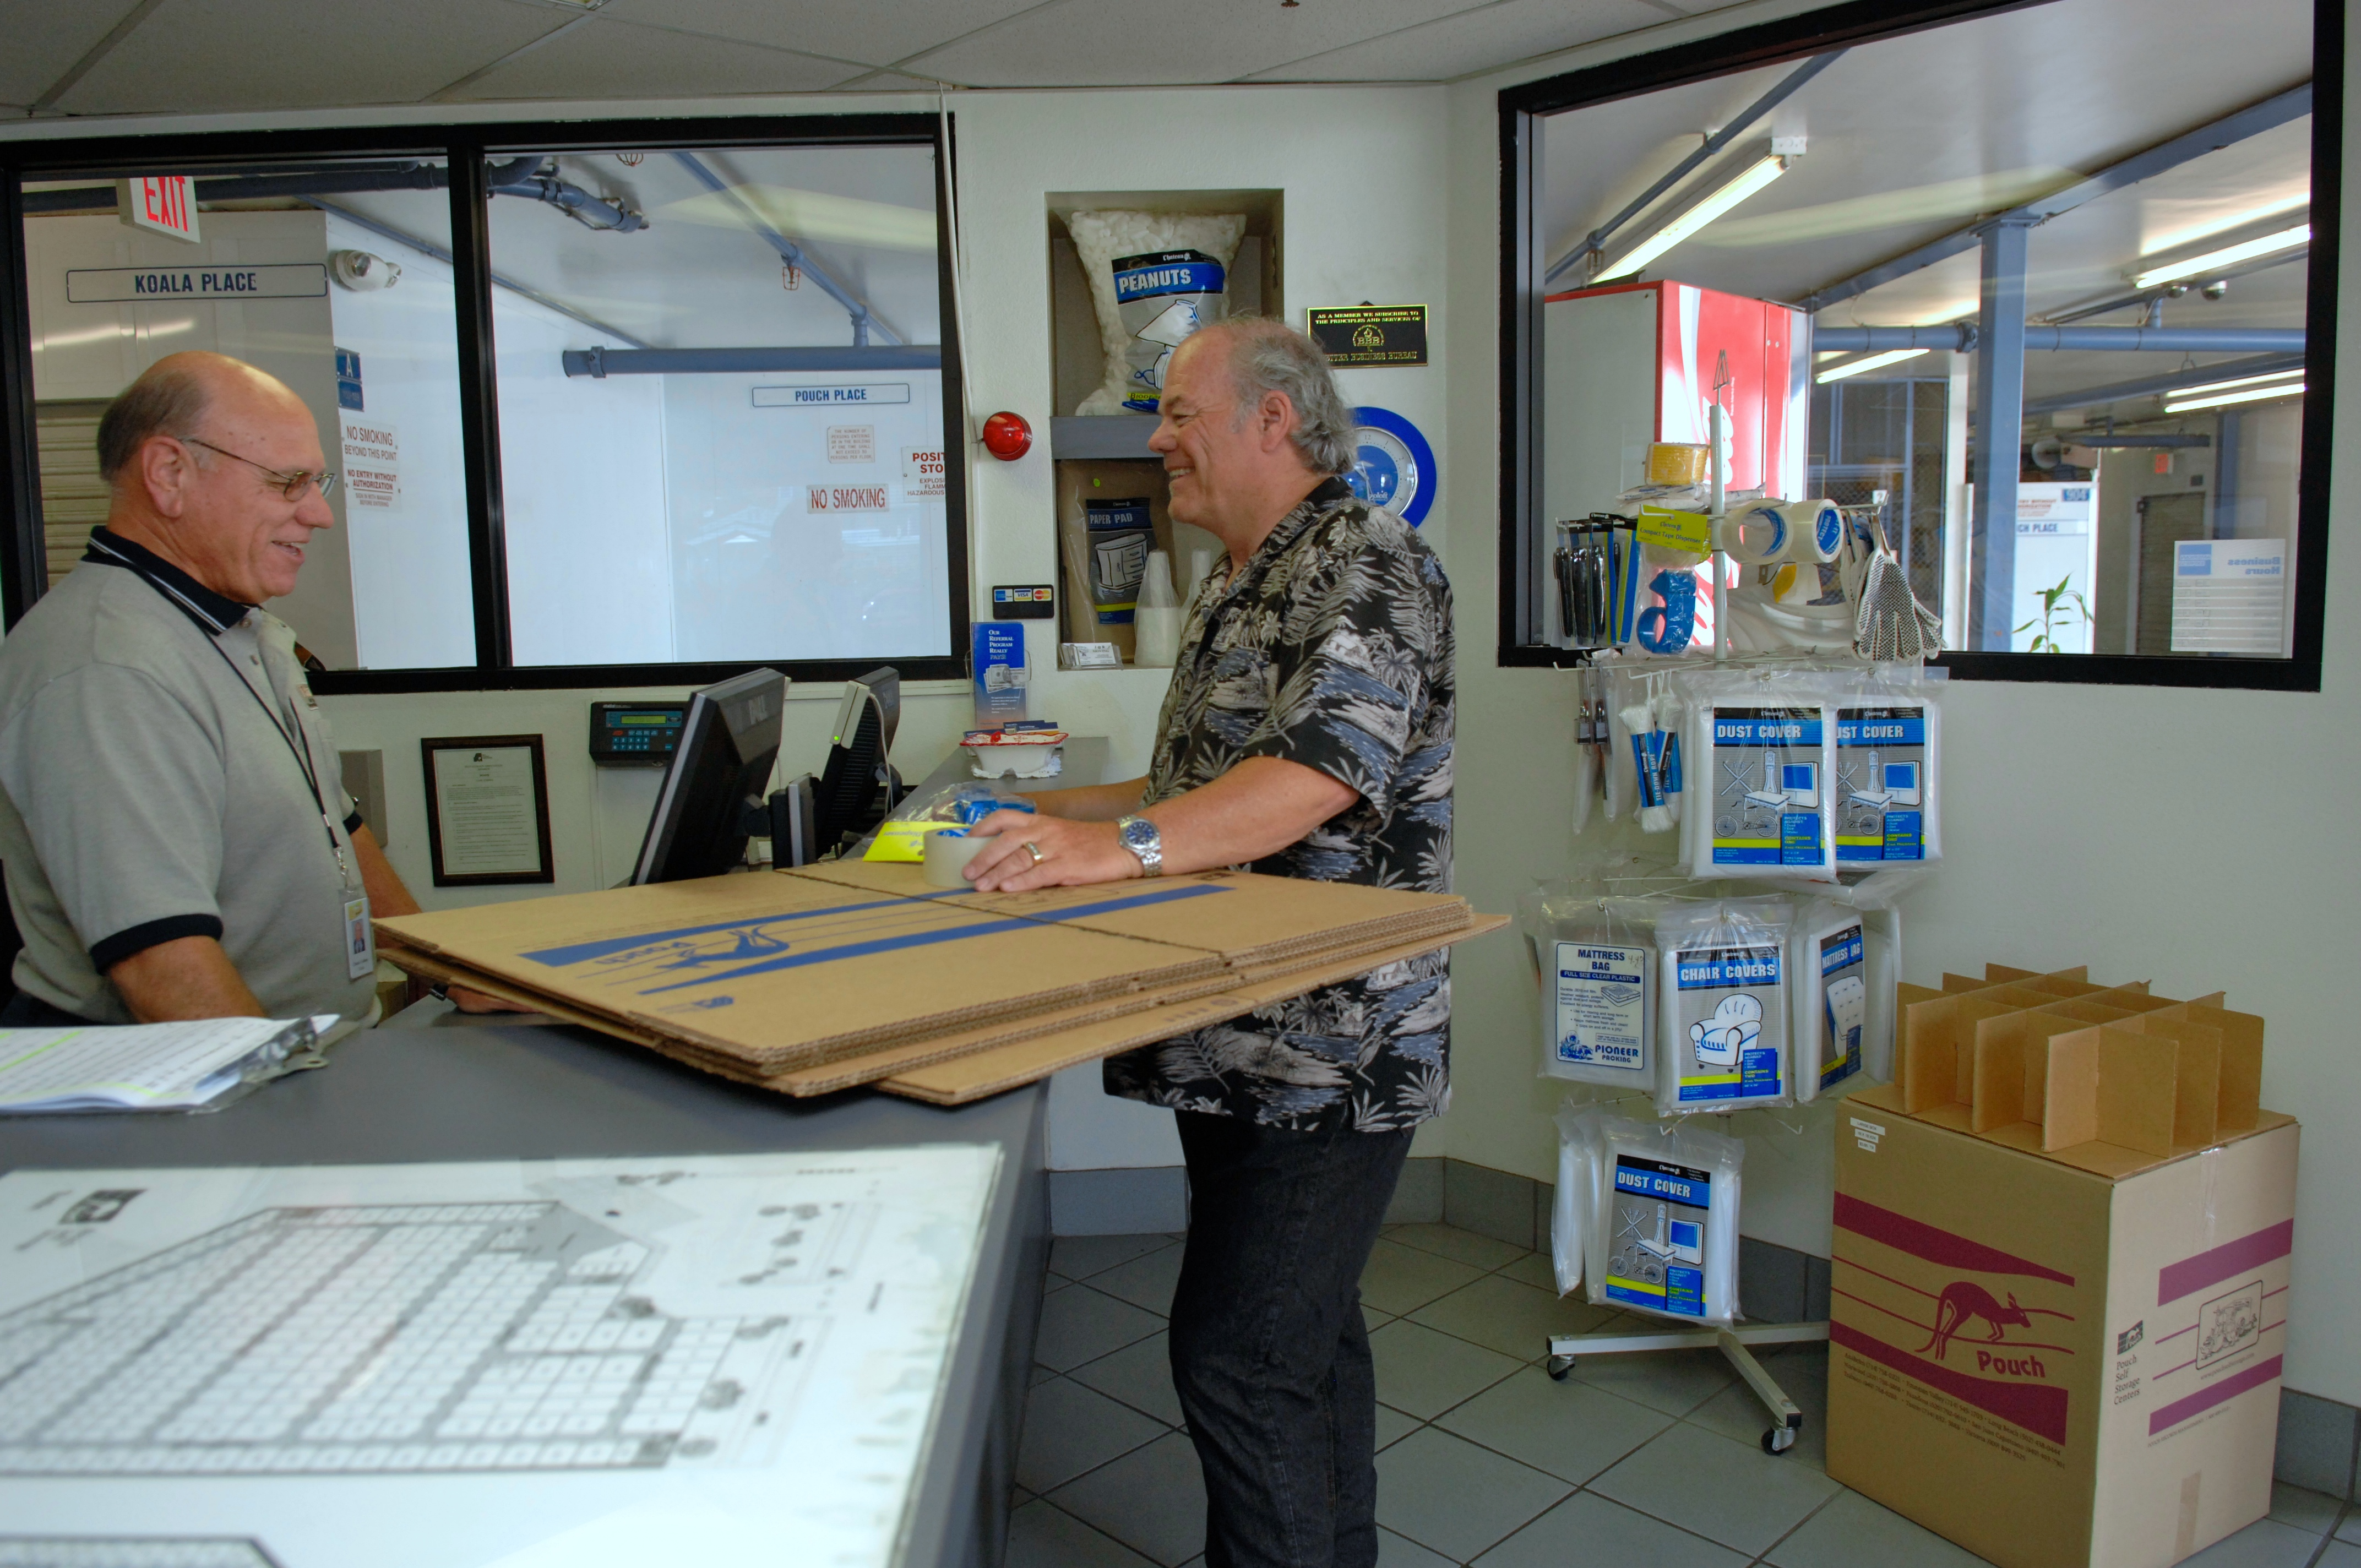 Tustin Self Storage image 3